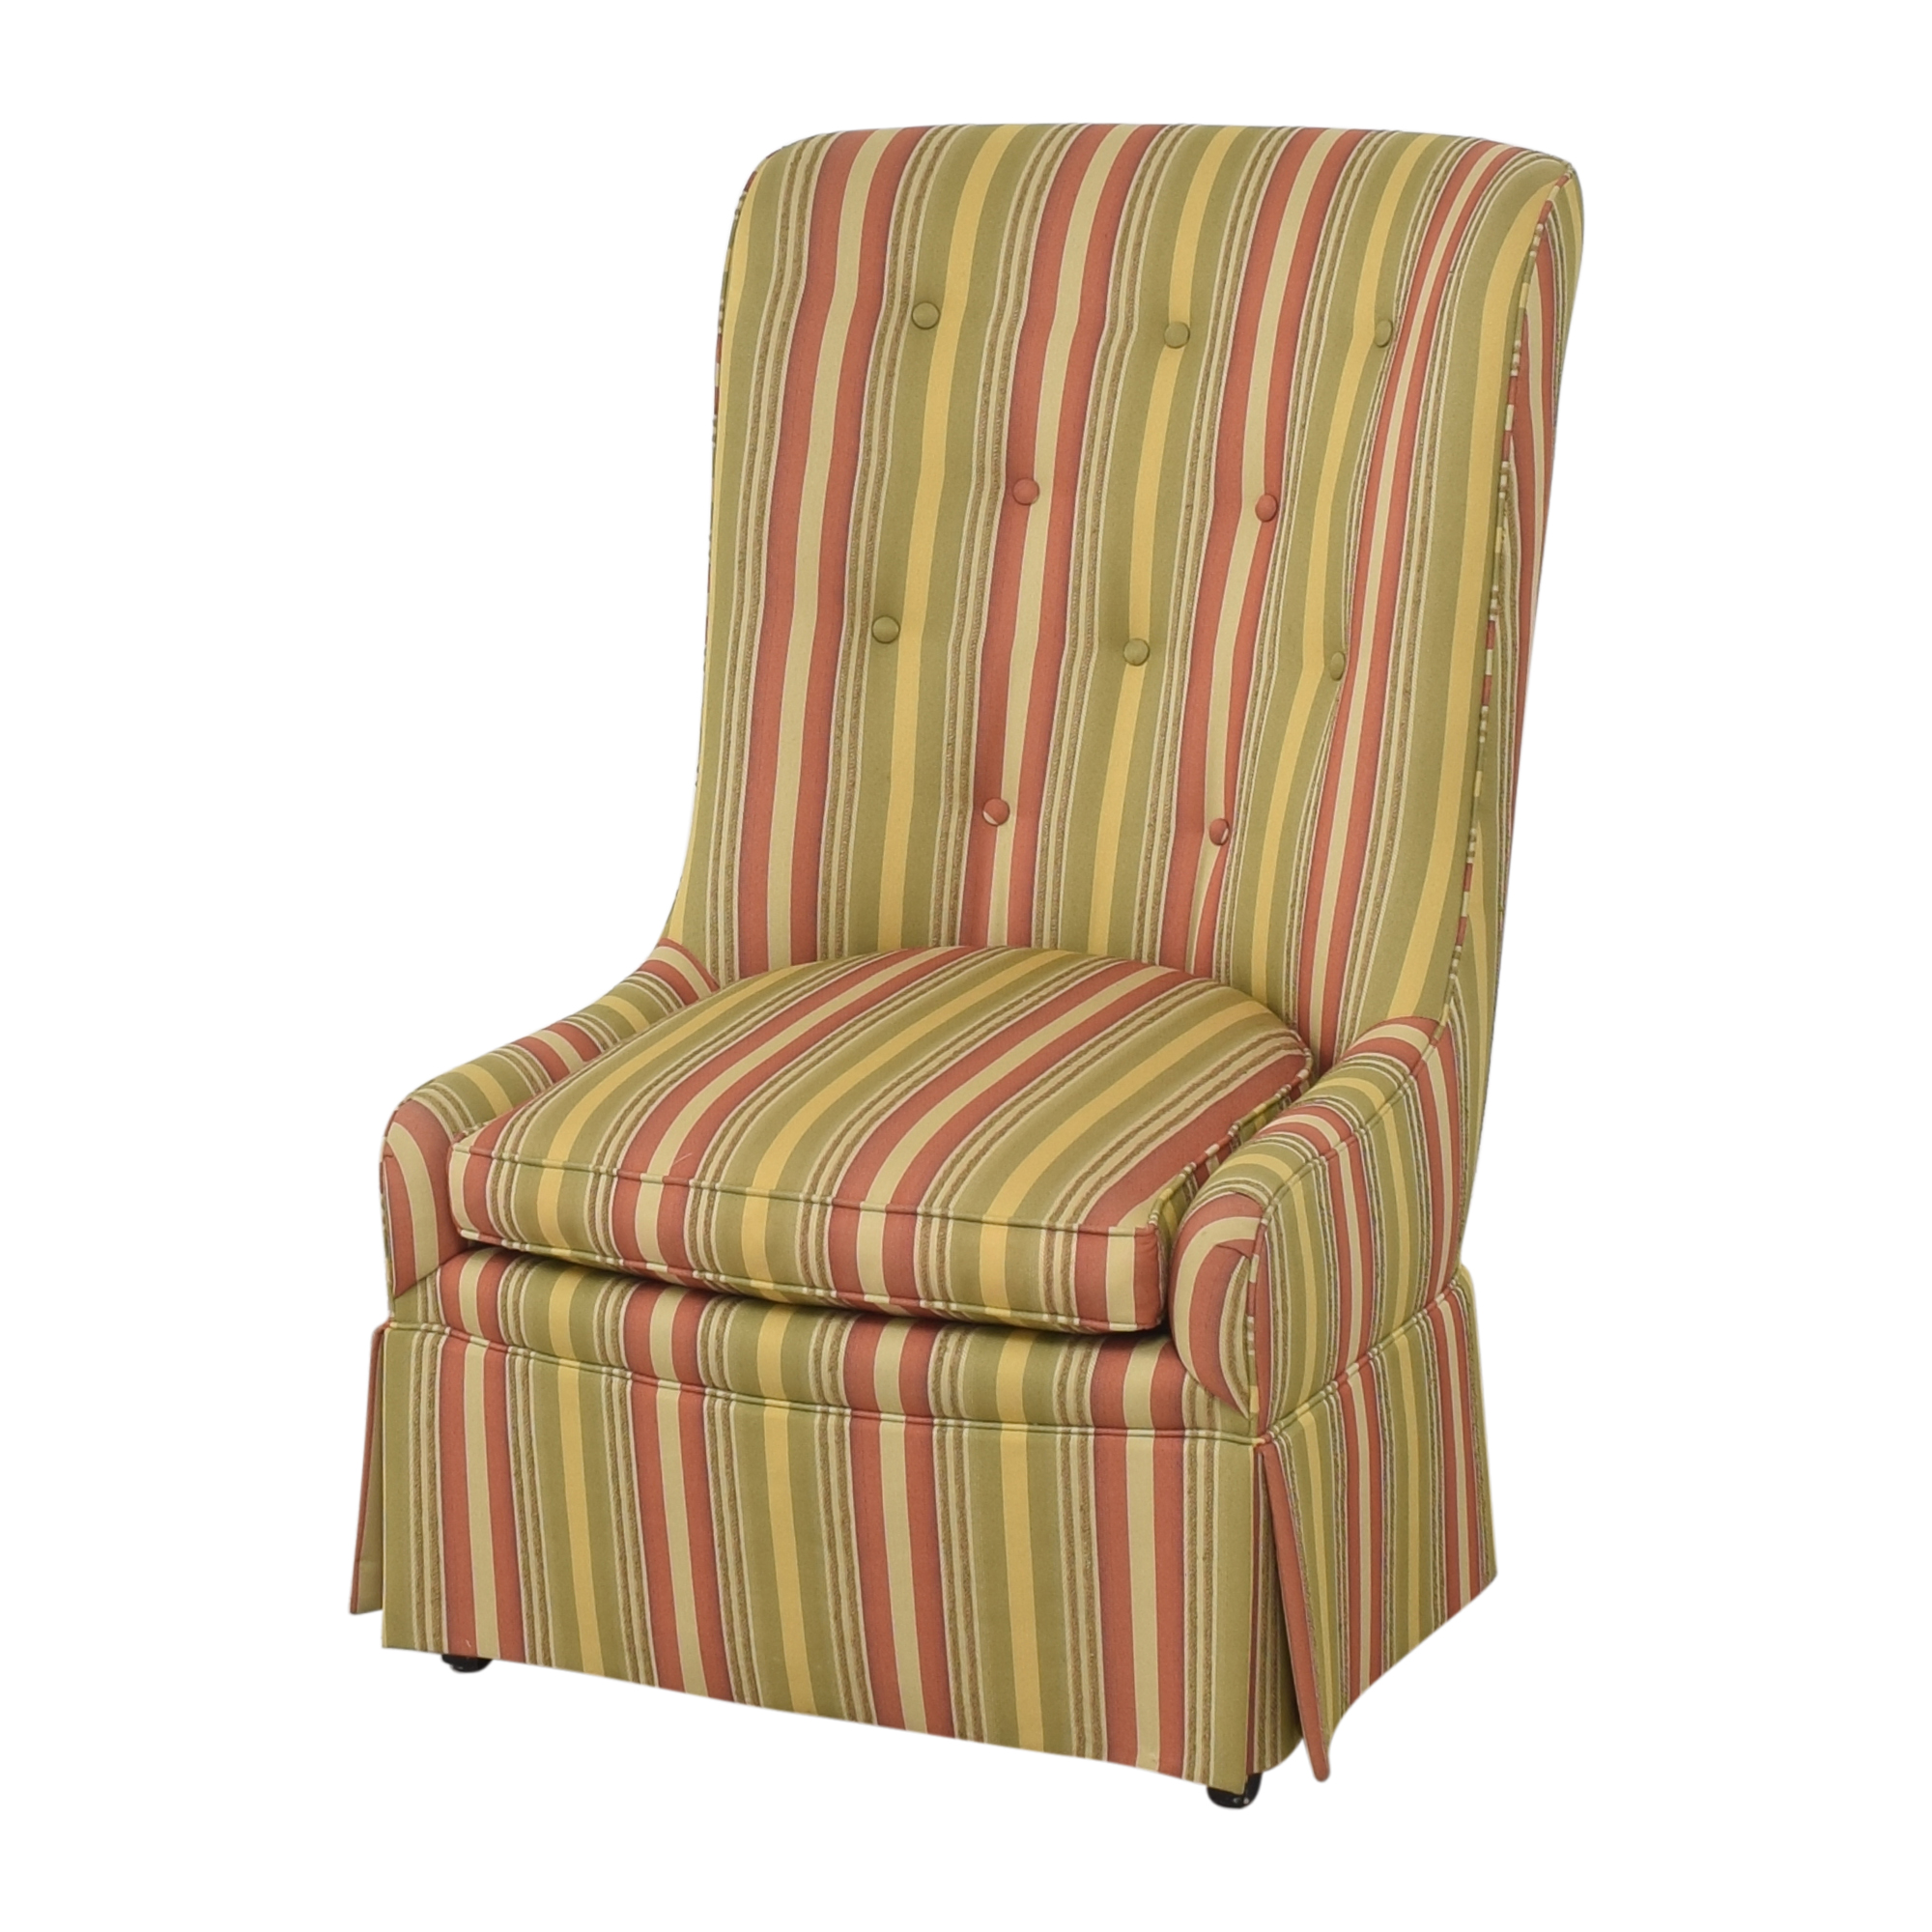 Theodore Alexander Theodore Alexander Althorp Living History Accent Chair pa